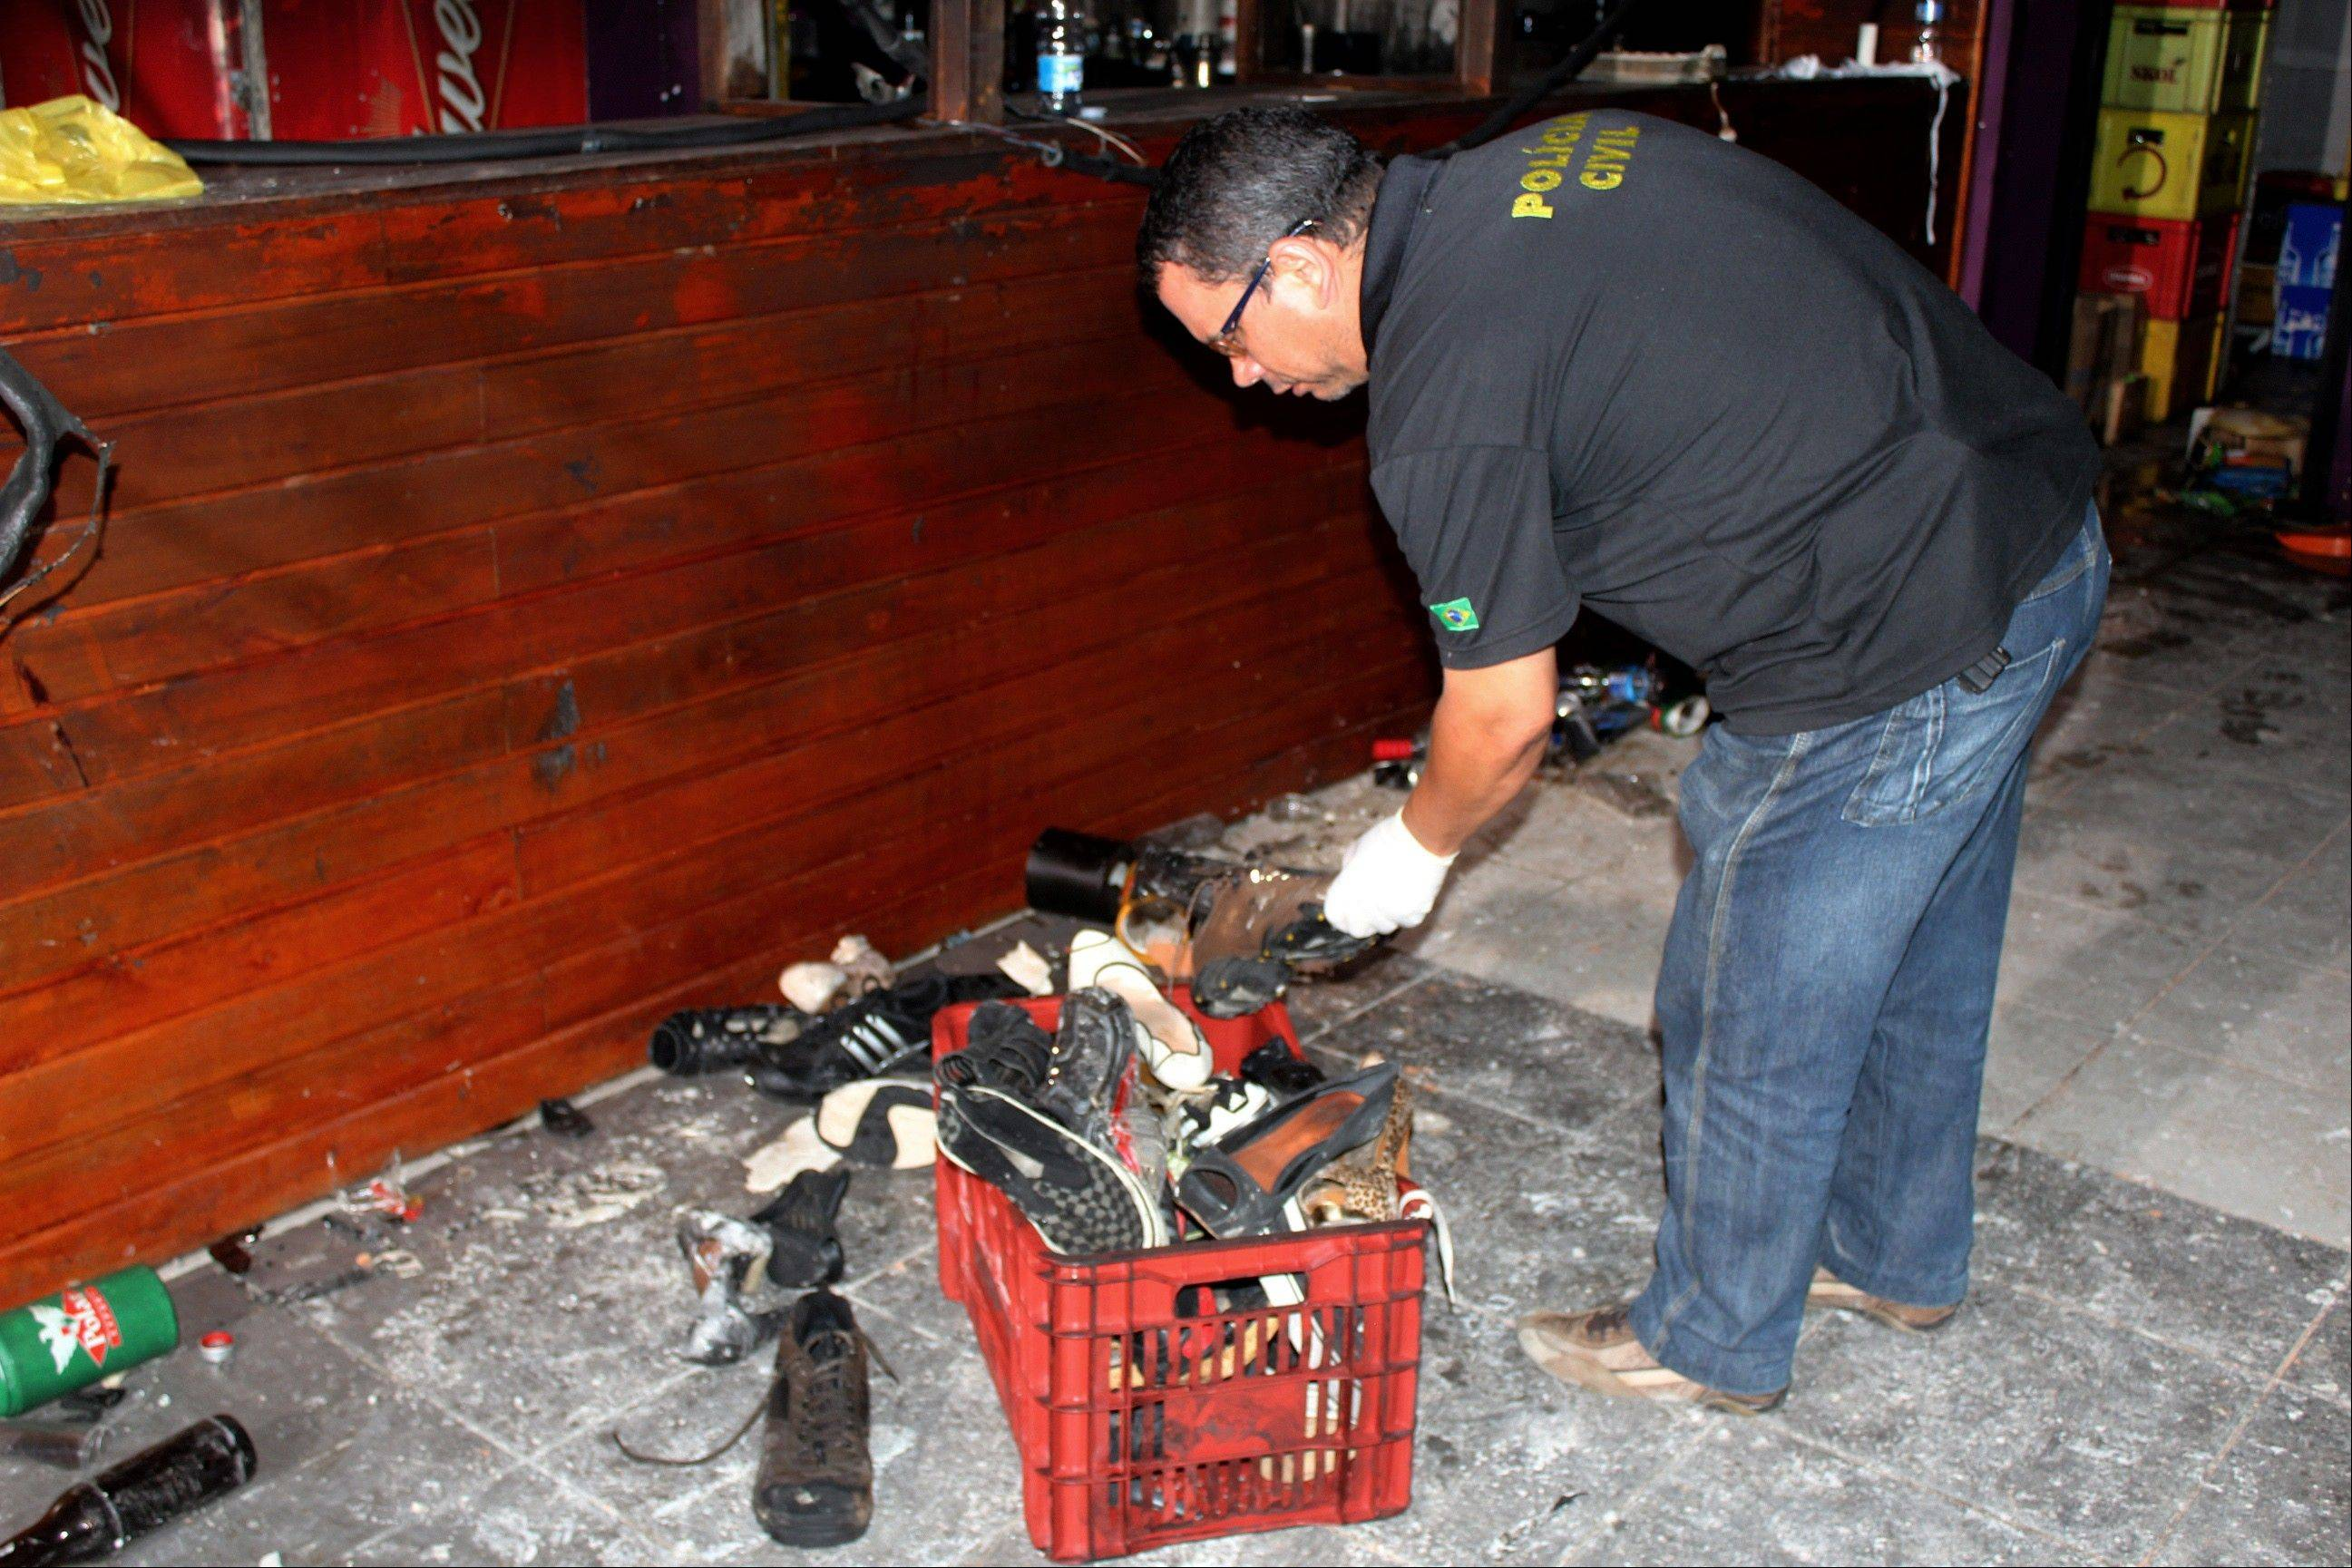 A police officer inspects victims� belongings after a fire at the Kiss nightclub in Santa Maria City, Rio Grande do Sul state, Brazil, Tuesday, Jan. 29, 2012. The blaze began at around 2:30 a.m. local time on Sunday, during a performance by Gurizada Fandangueira, a country music band that had made the use of pyrotechnics a trademark of their shows.